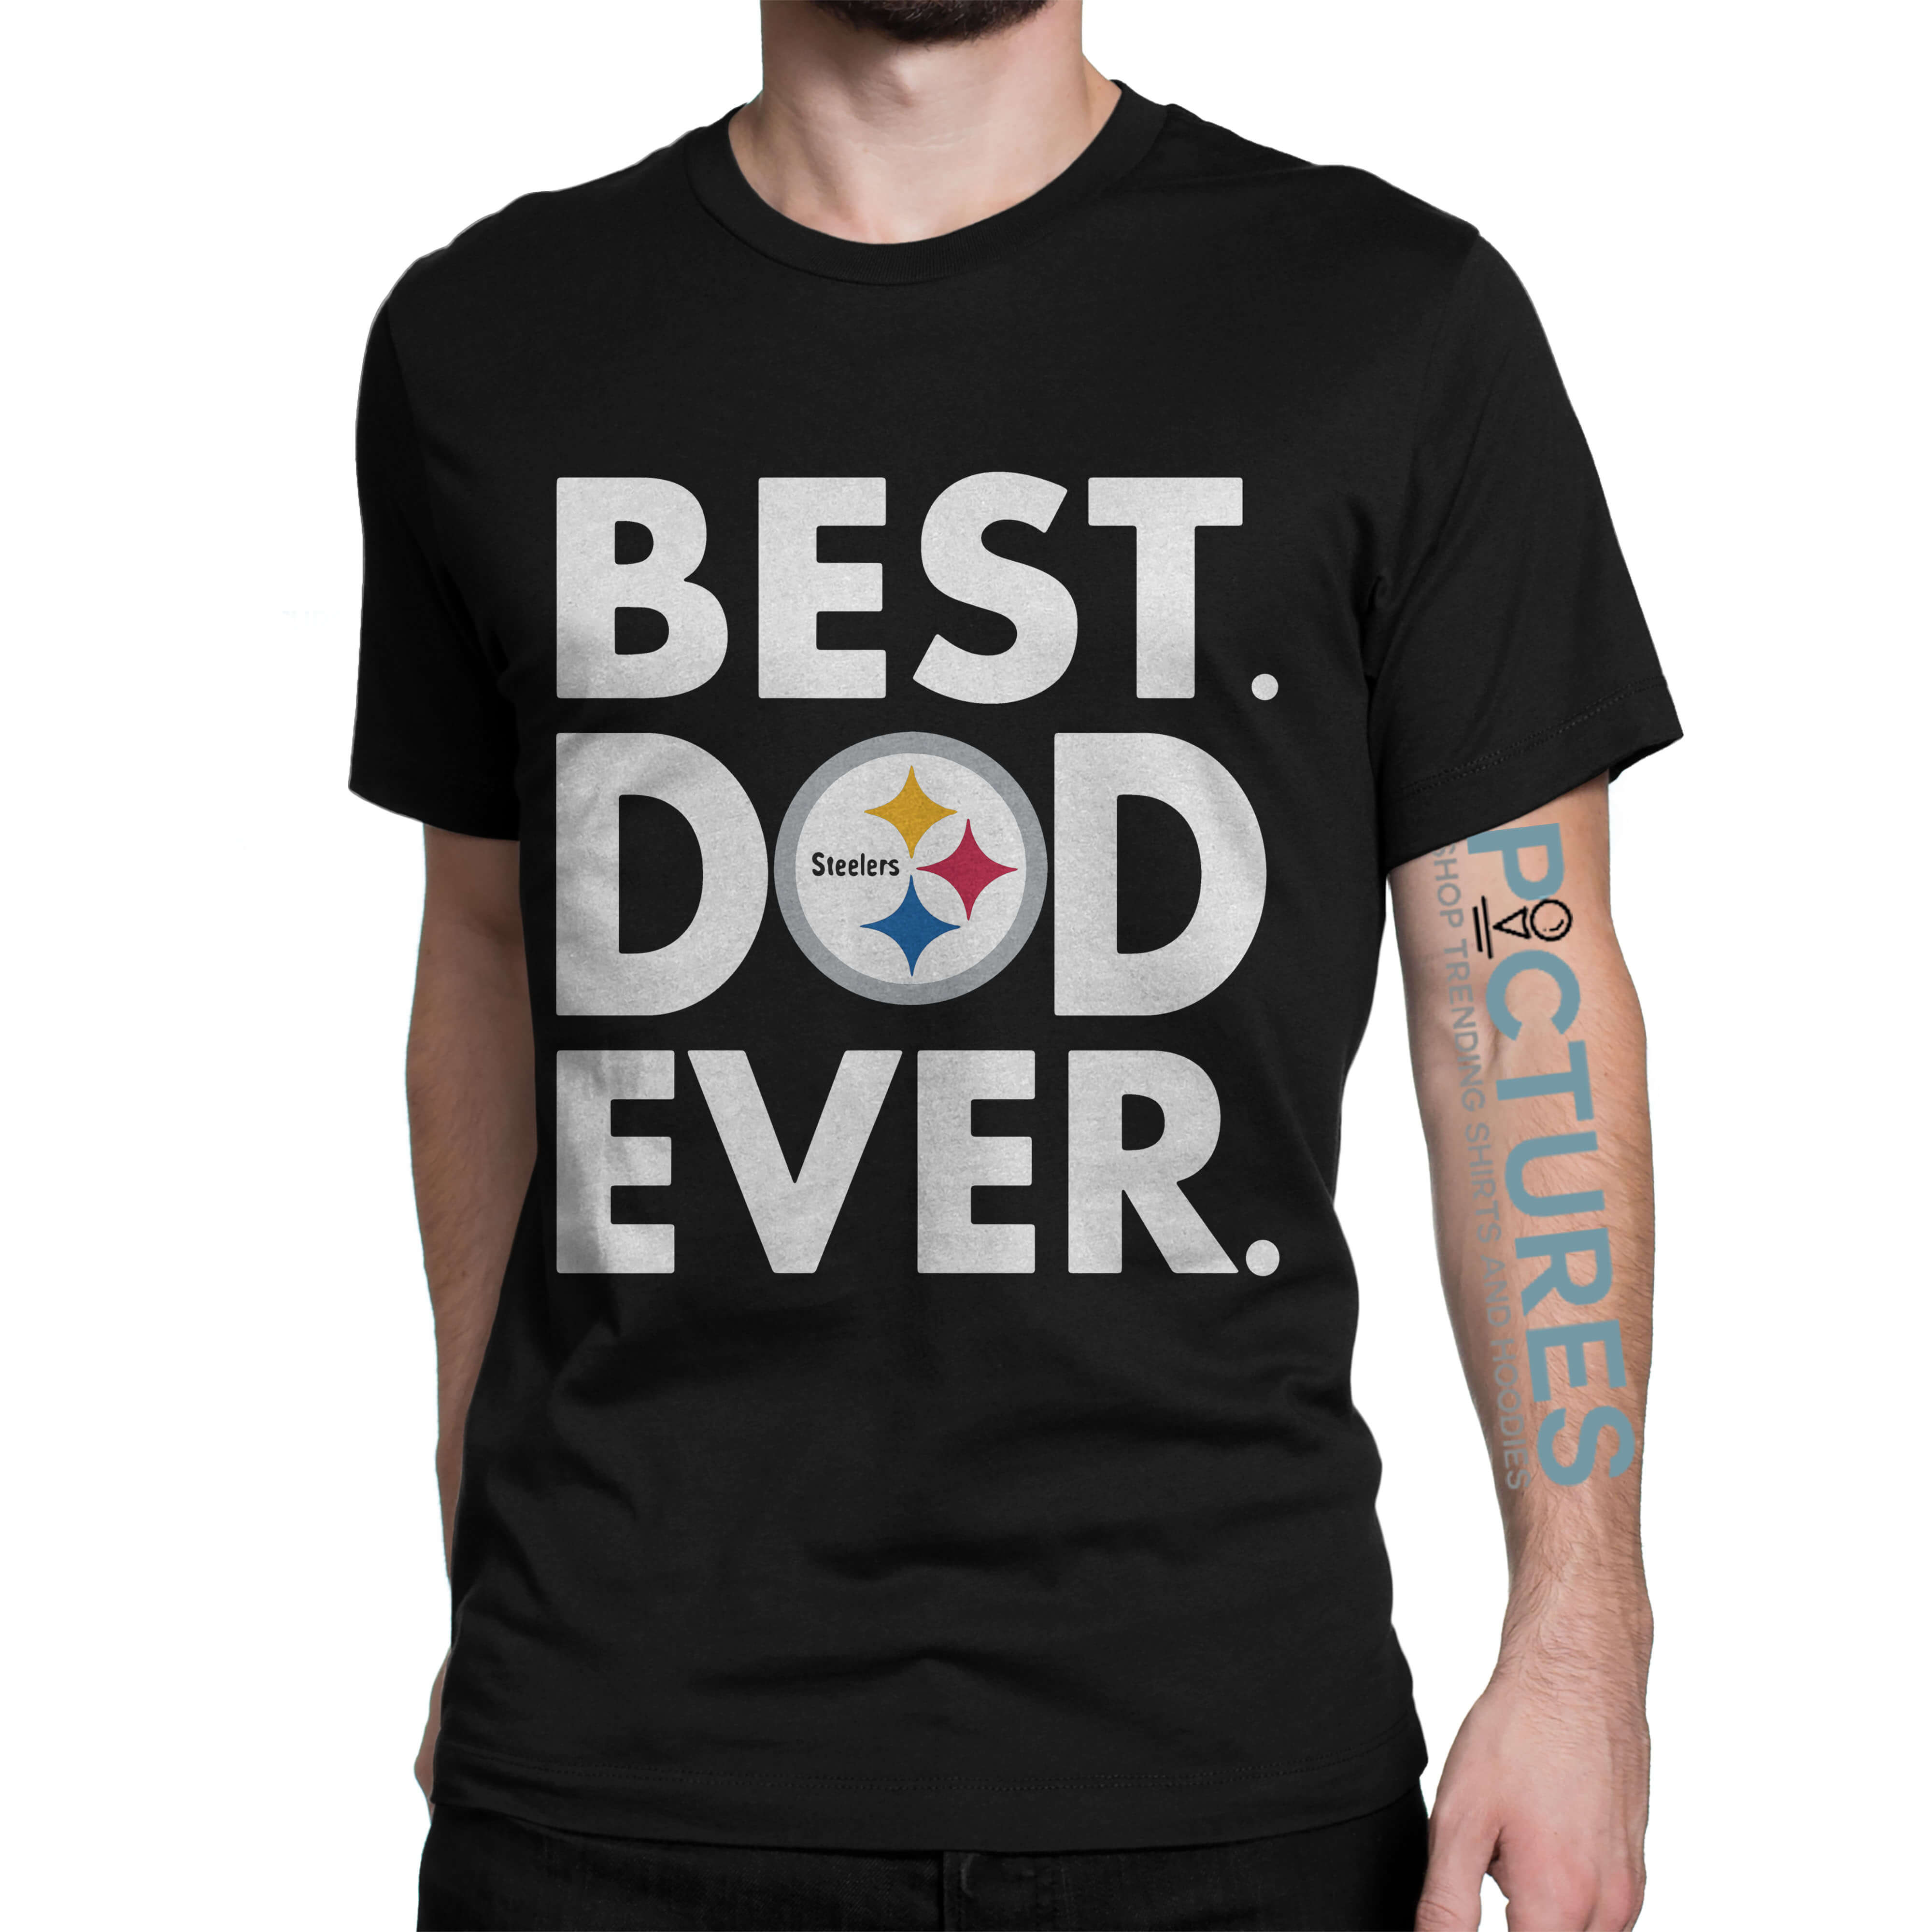 Pittsburgh Steelers NFL Best Dad ever shirt